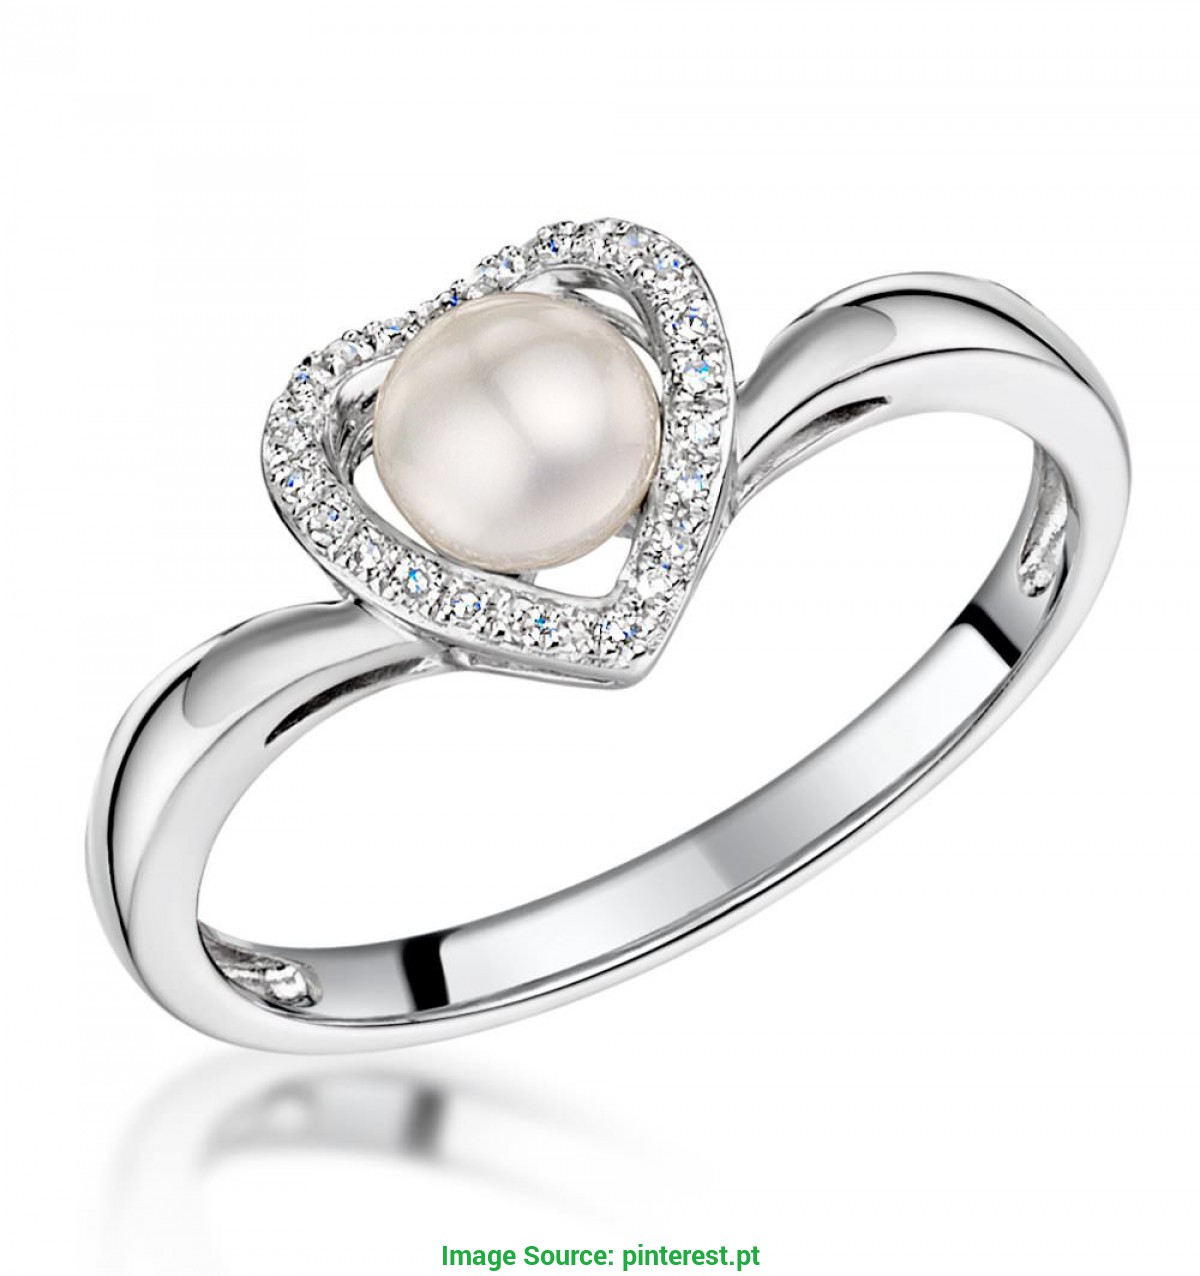 Melhor Ideia Anel Ouro Branco 9K Stellato Collection Pearl And Diamond Heart Ring In 9K White Gol